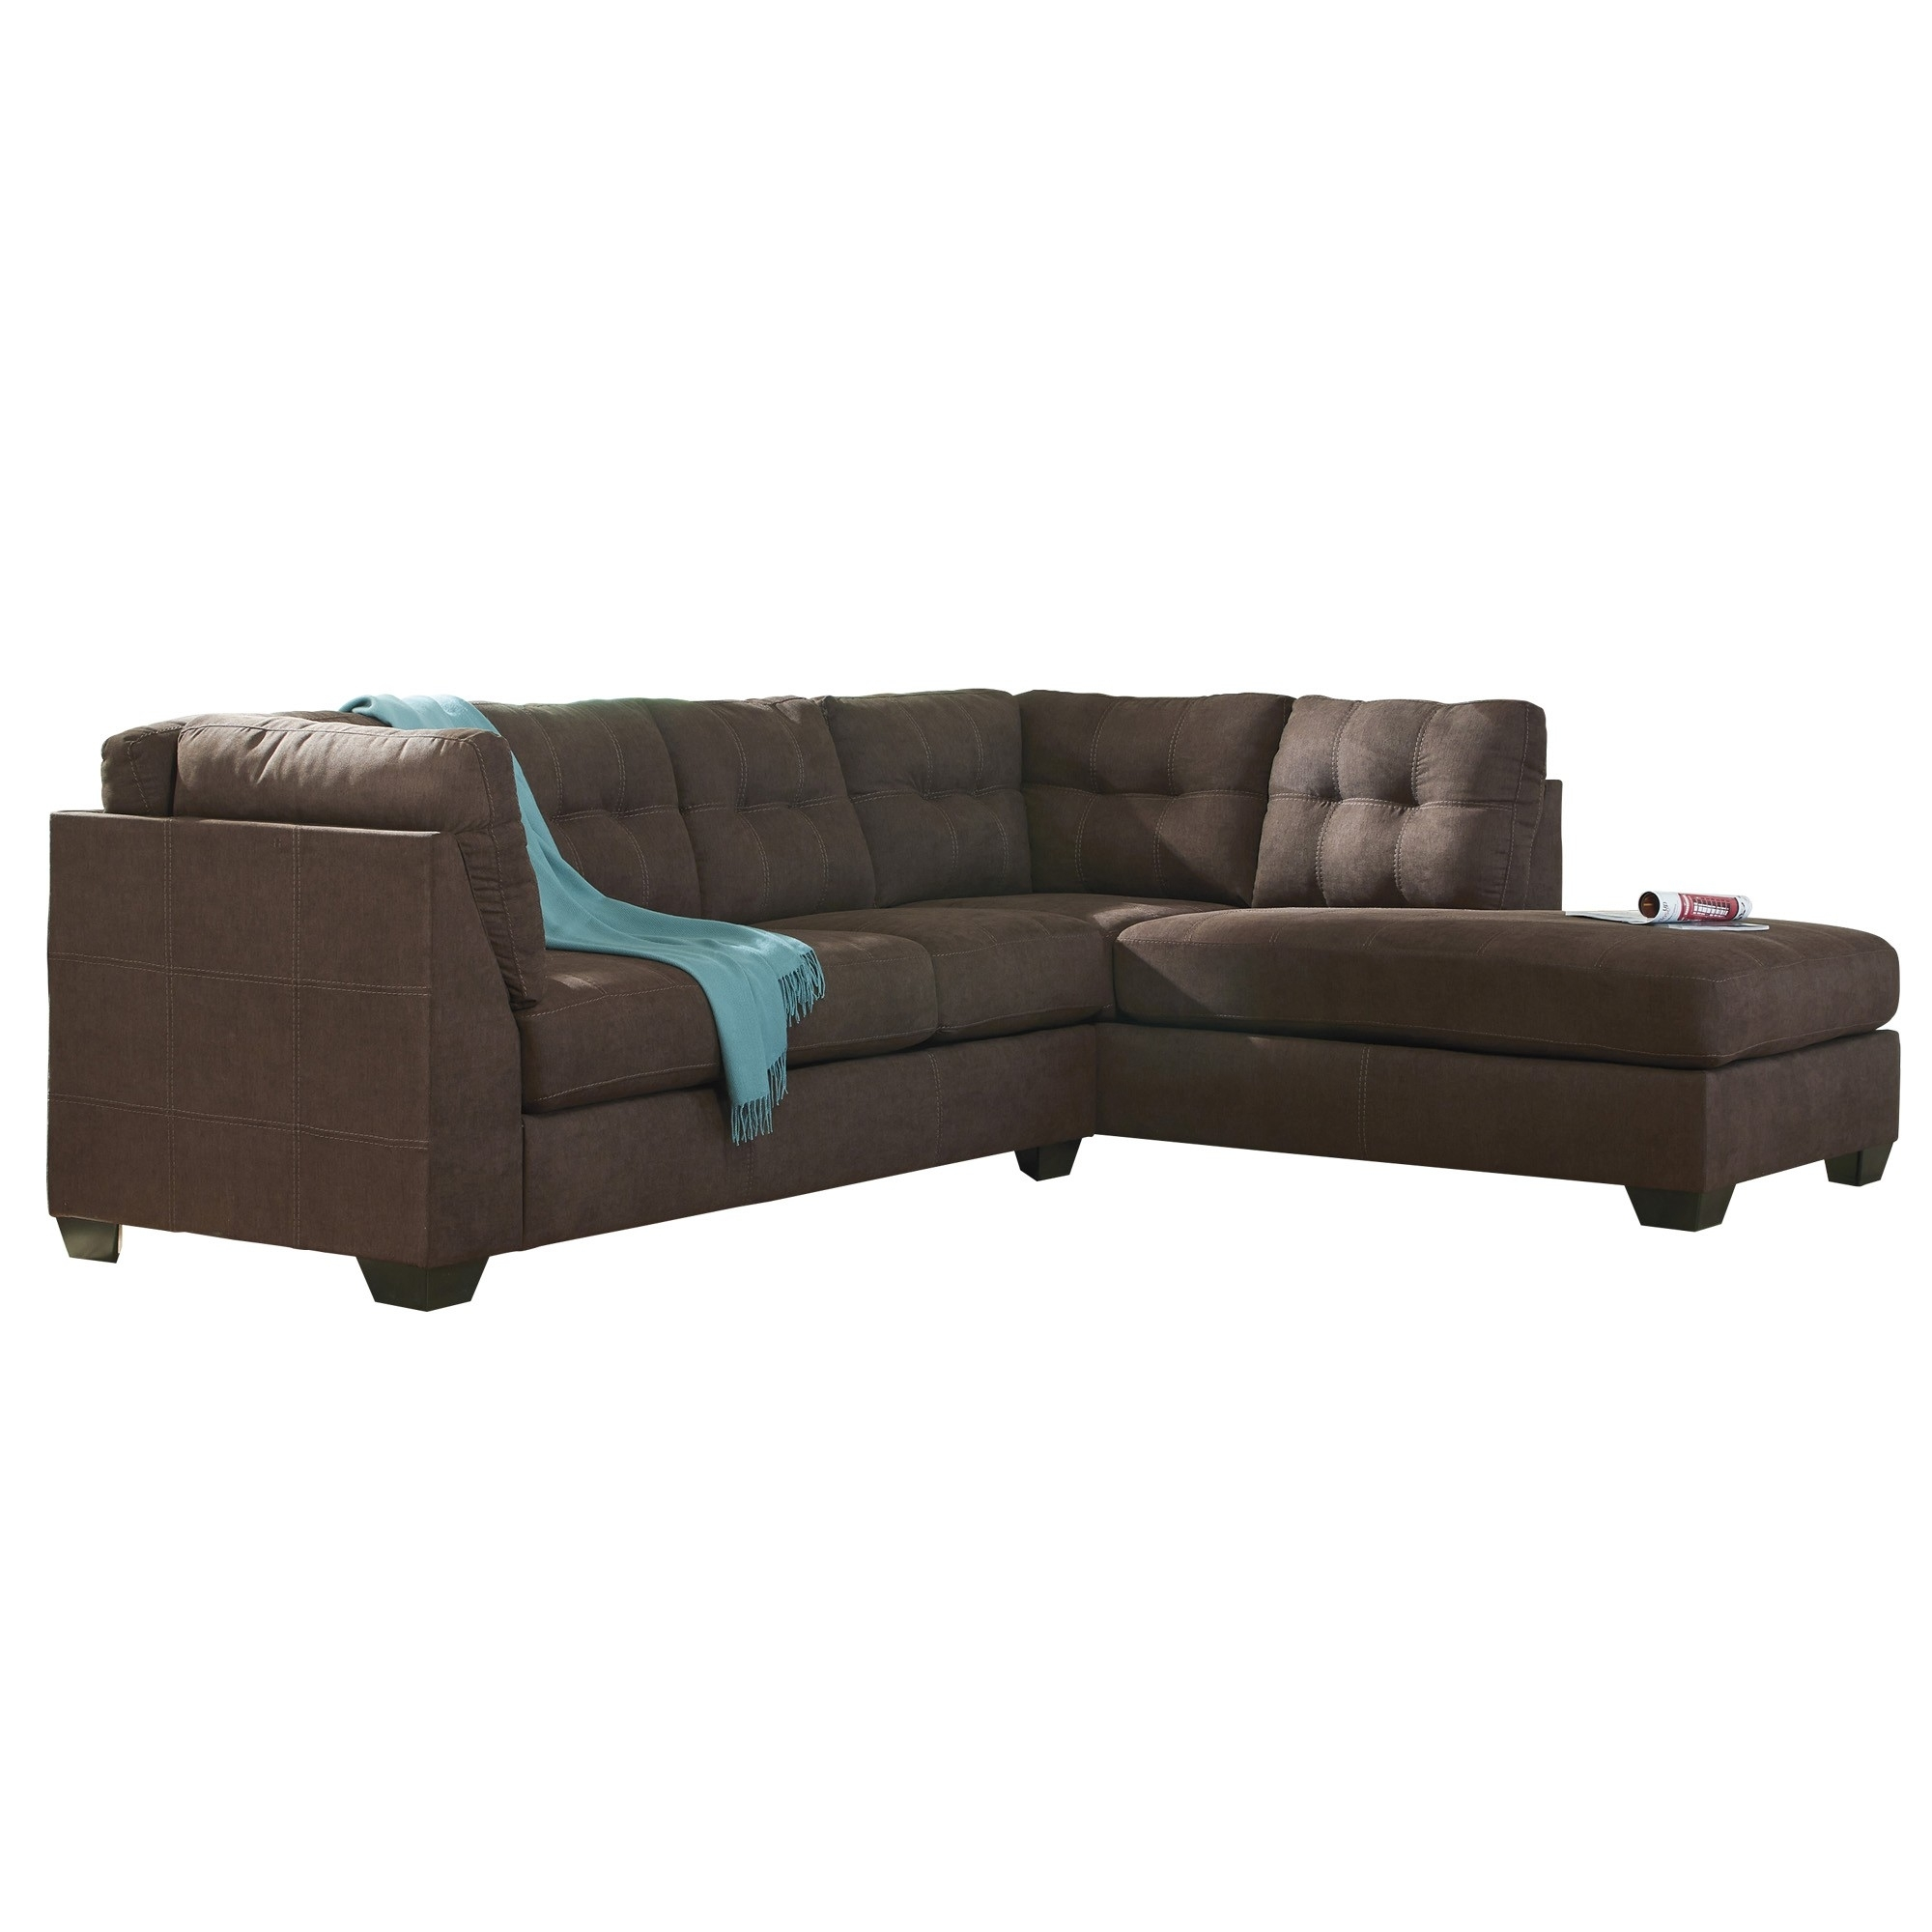 Sectionals | Tepperman's For Teppermans Sectional Sofas (View 9 of 10)